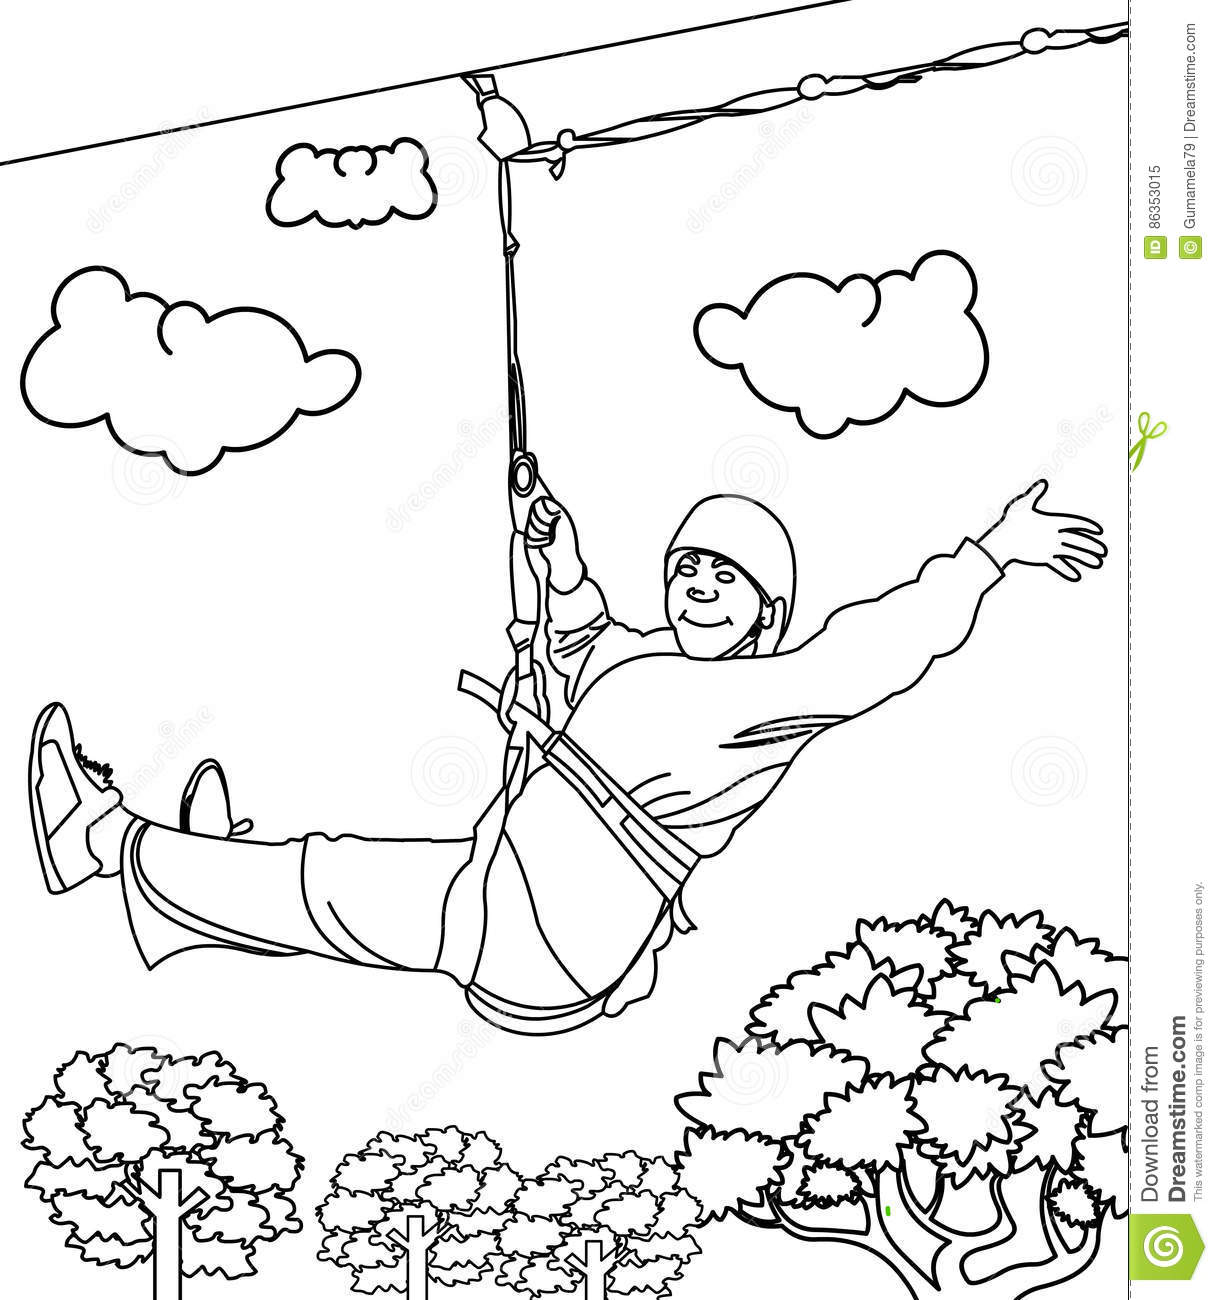 Coloring book download zip - Royalty Free Illustration Download Zipline Coloring